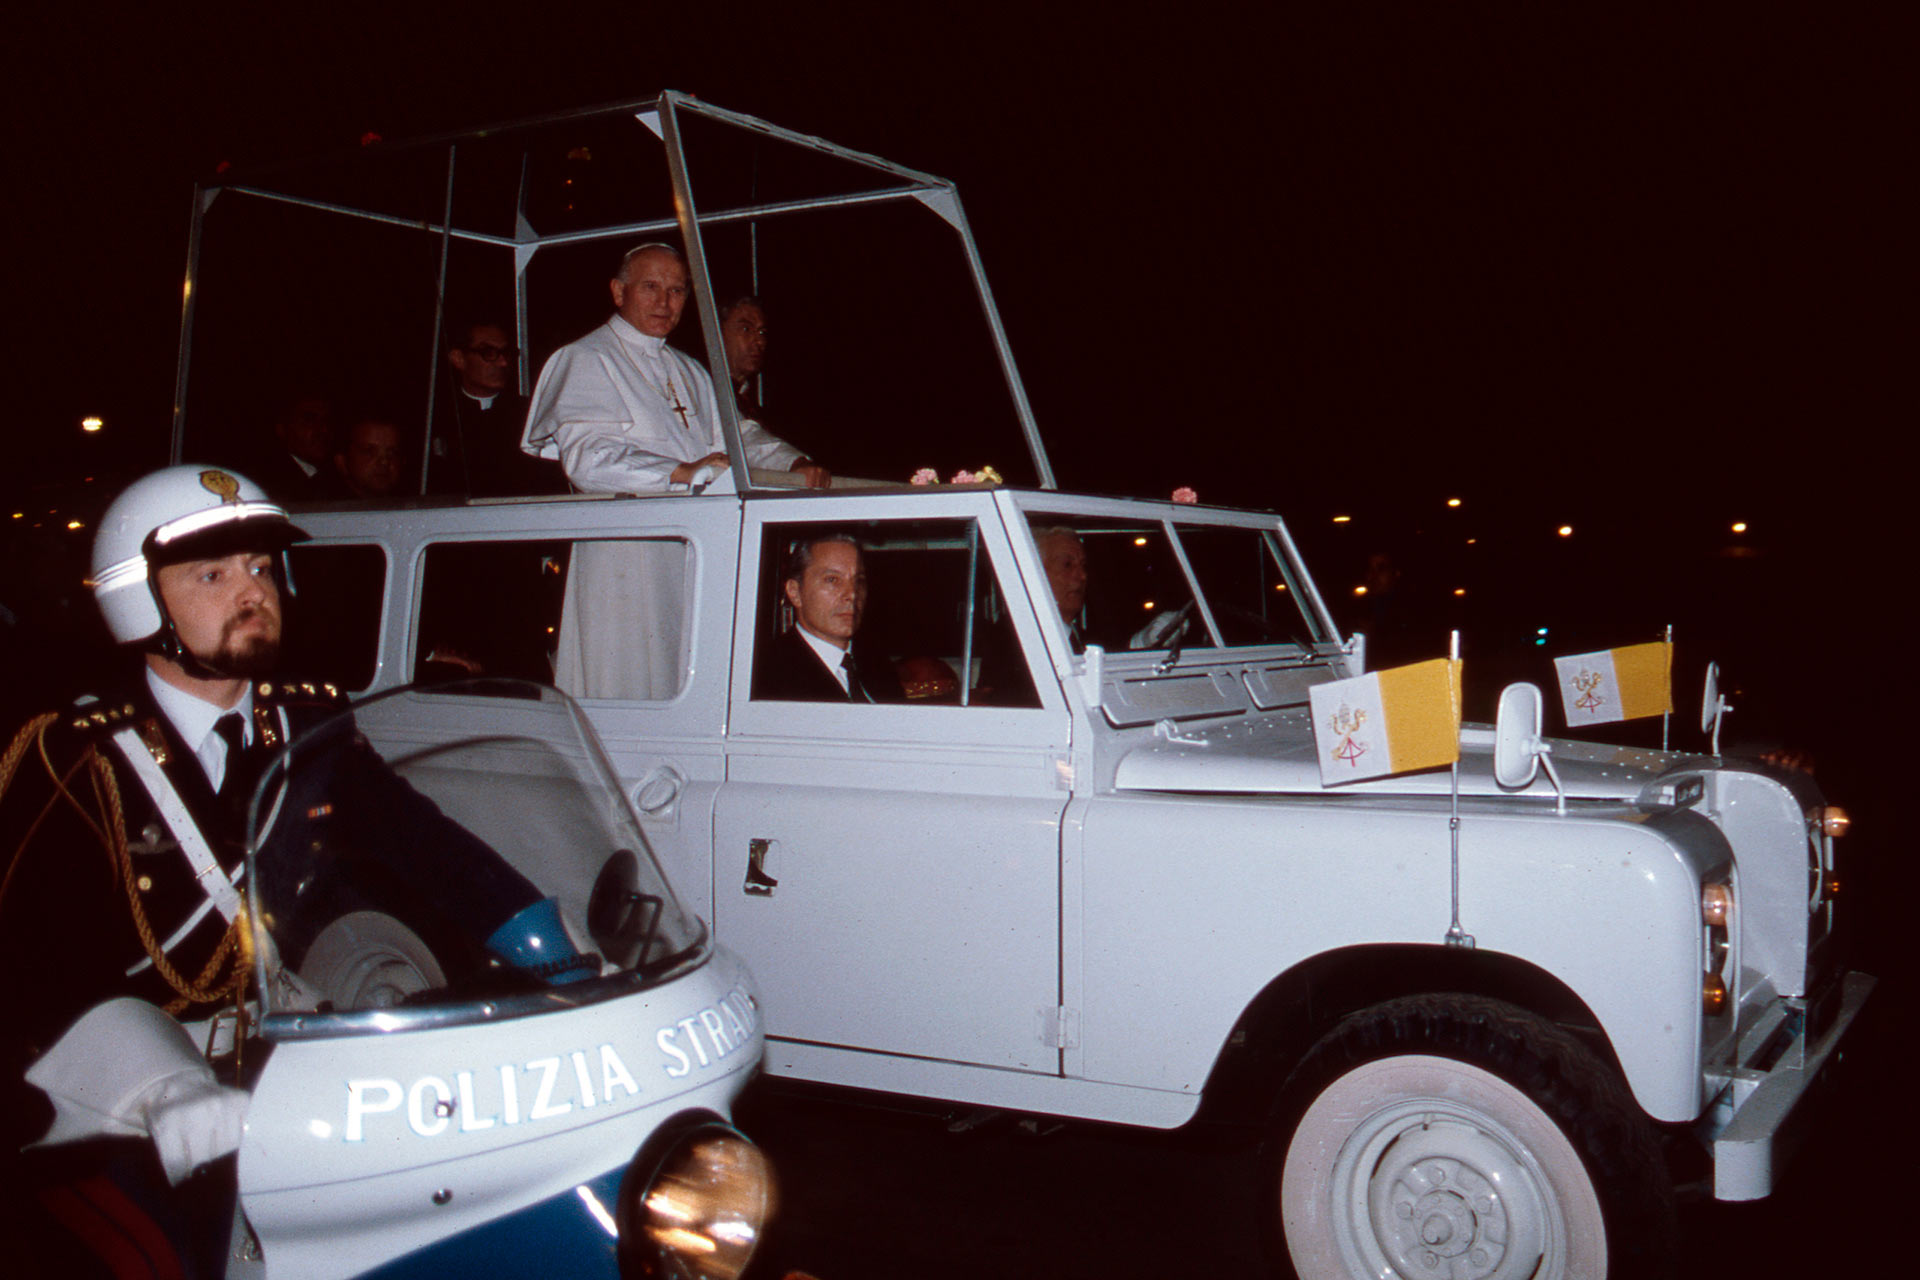 """After two very intense days of commitments, Pope Woytila, passing in Popemobile through the streets of Palermo, is transferred to the port of Palermo, where a helicopter was waiting for him to bring him to Punta Raisi airport, now named: """"Falcone and Borsellino airport""""."""